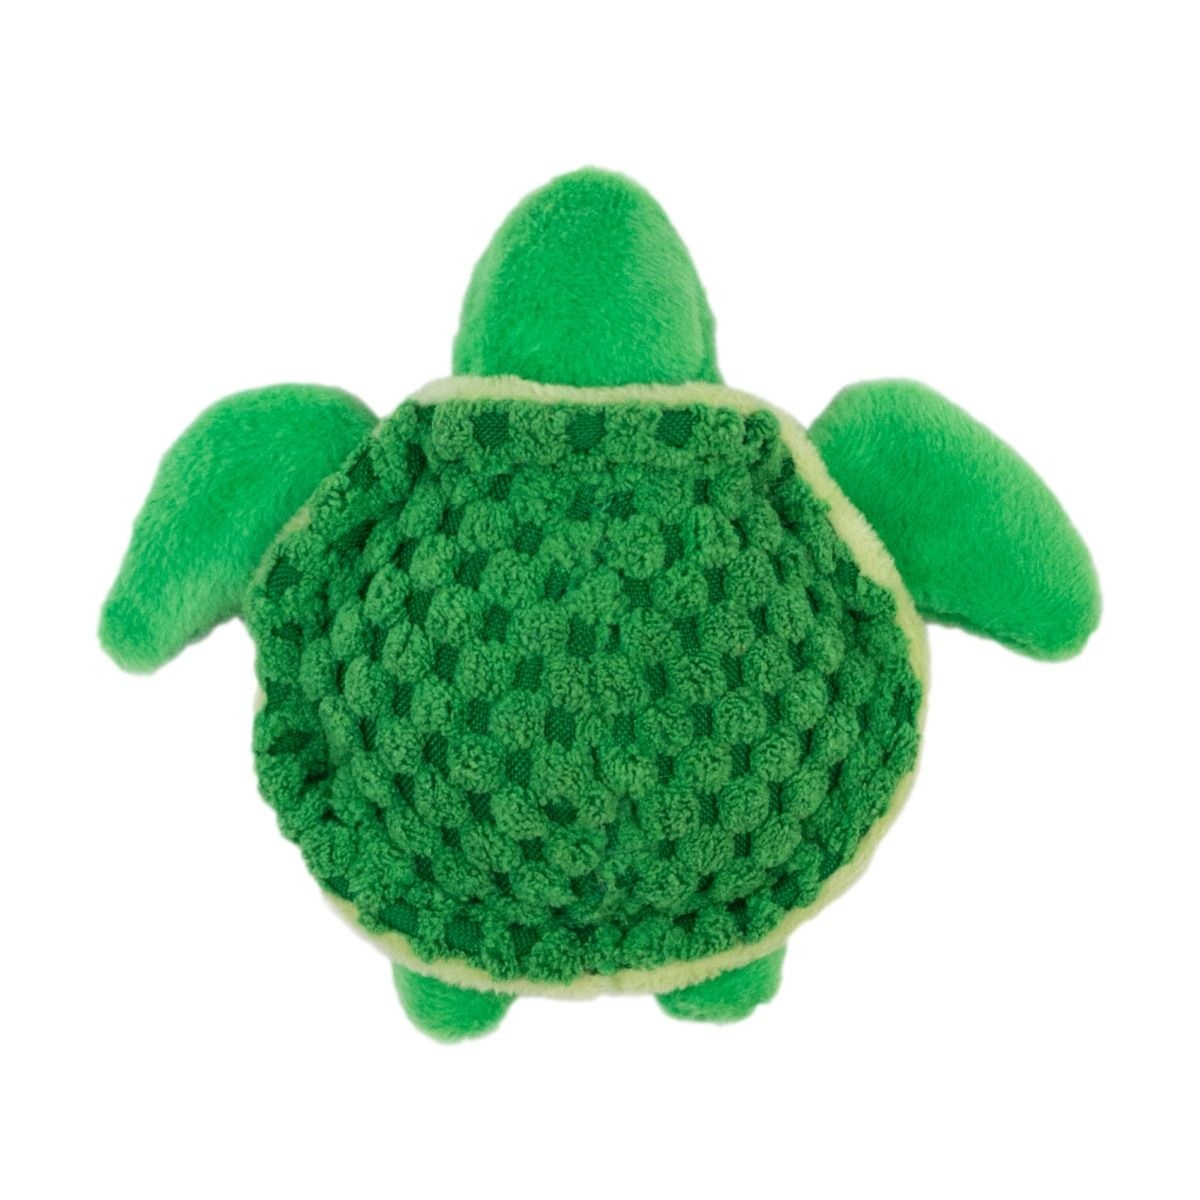 Tall Tails Tall Tails Plush Turtle with Squeaker